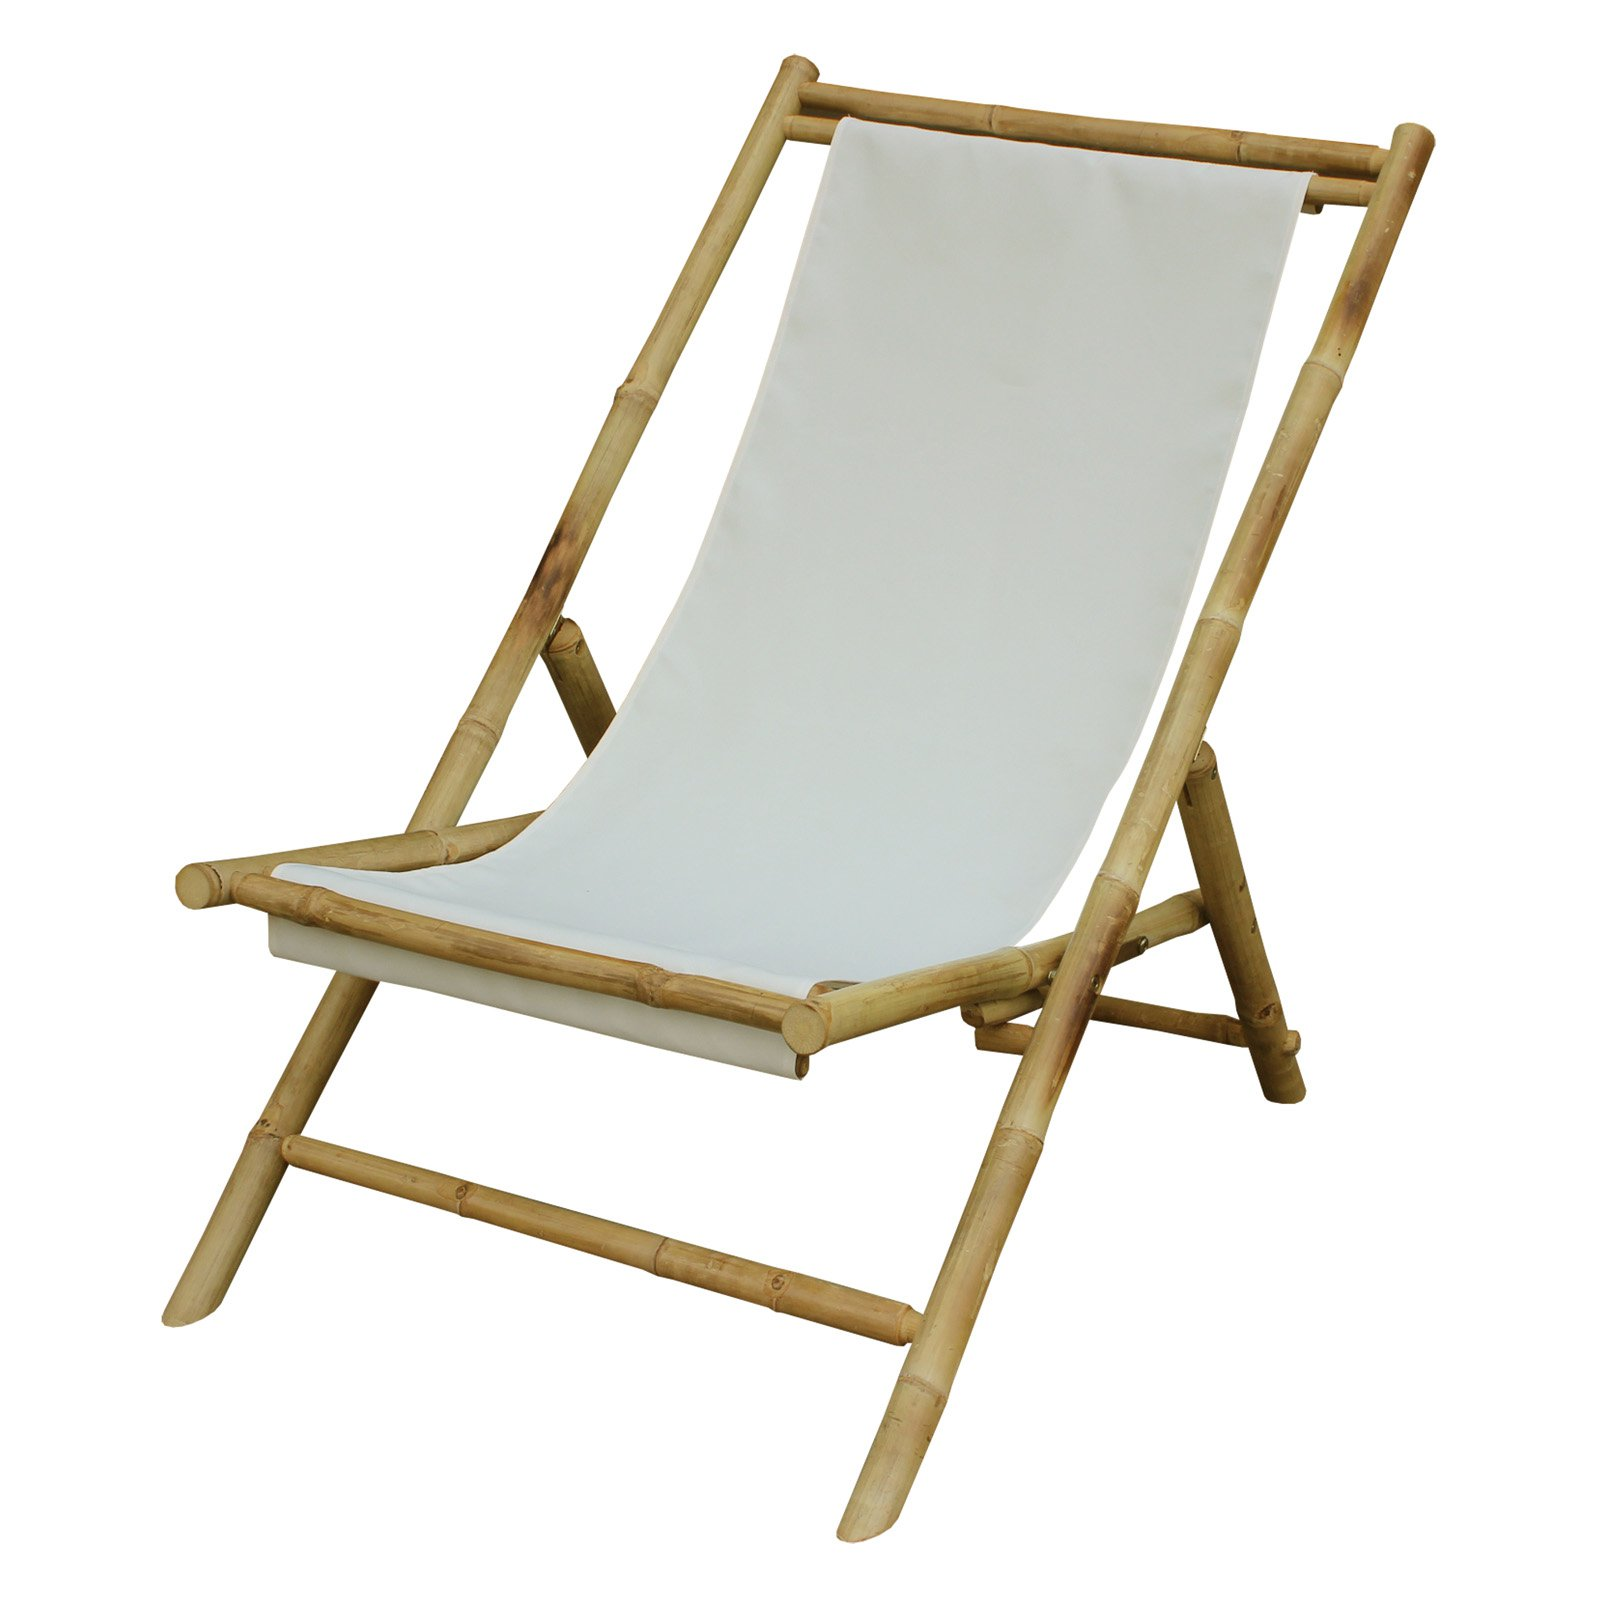 Zew Hand Crafted Folding Bamboo Sling Lounge Patio Chair